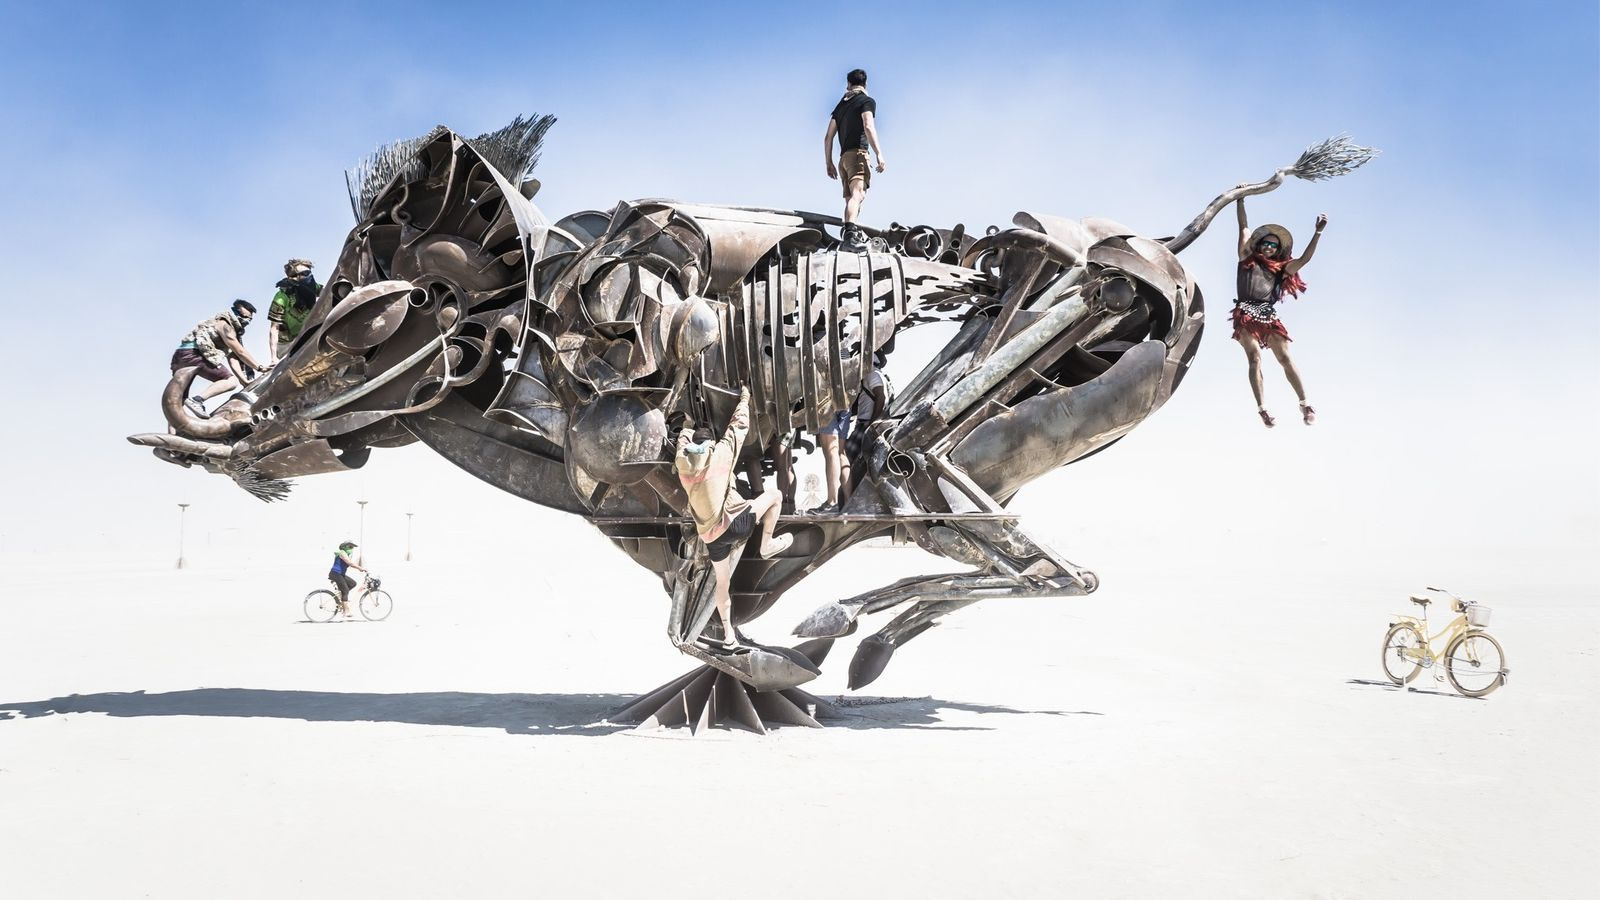 Cars For Sale Seattle >> Everything you need to see at Burning Man 2016 - Curbed SF